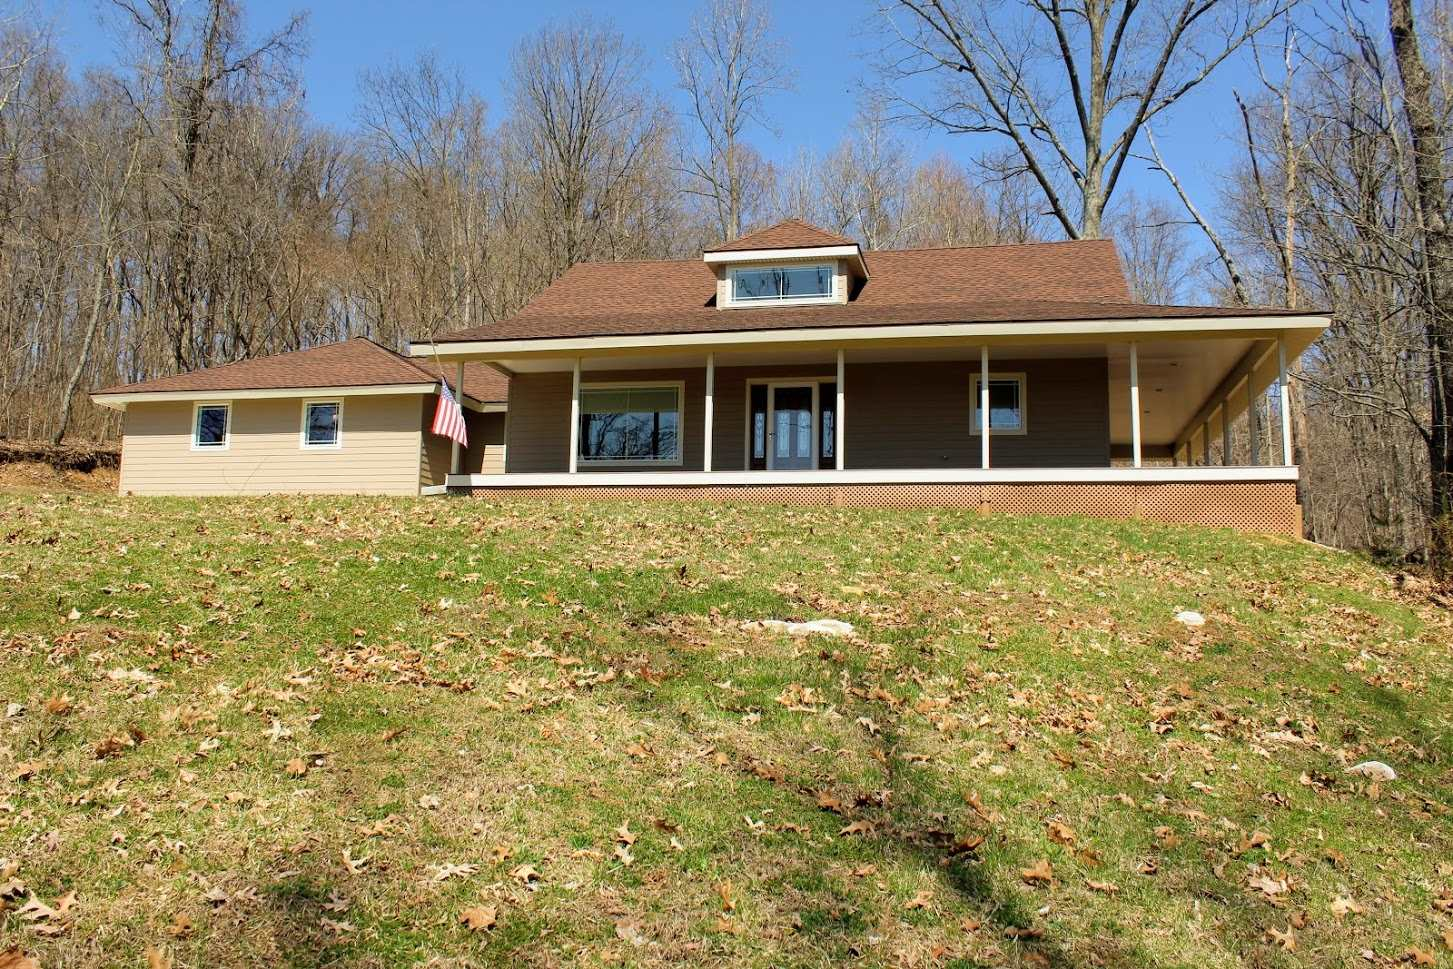 4195 St Rd 158 Bedford, IN 47421